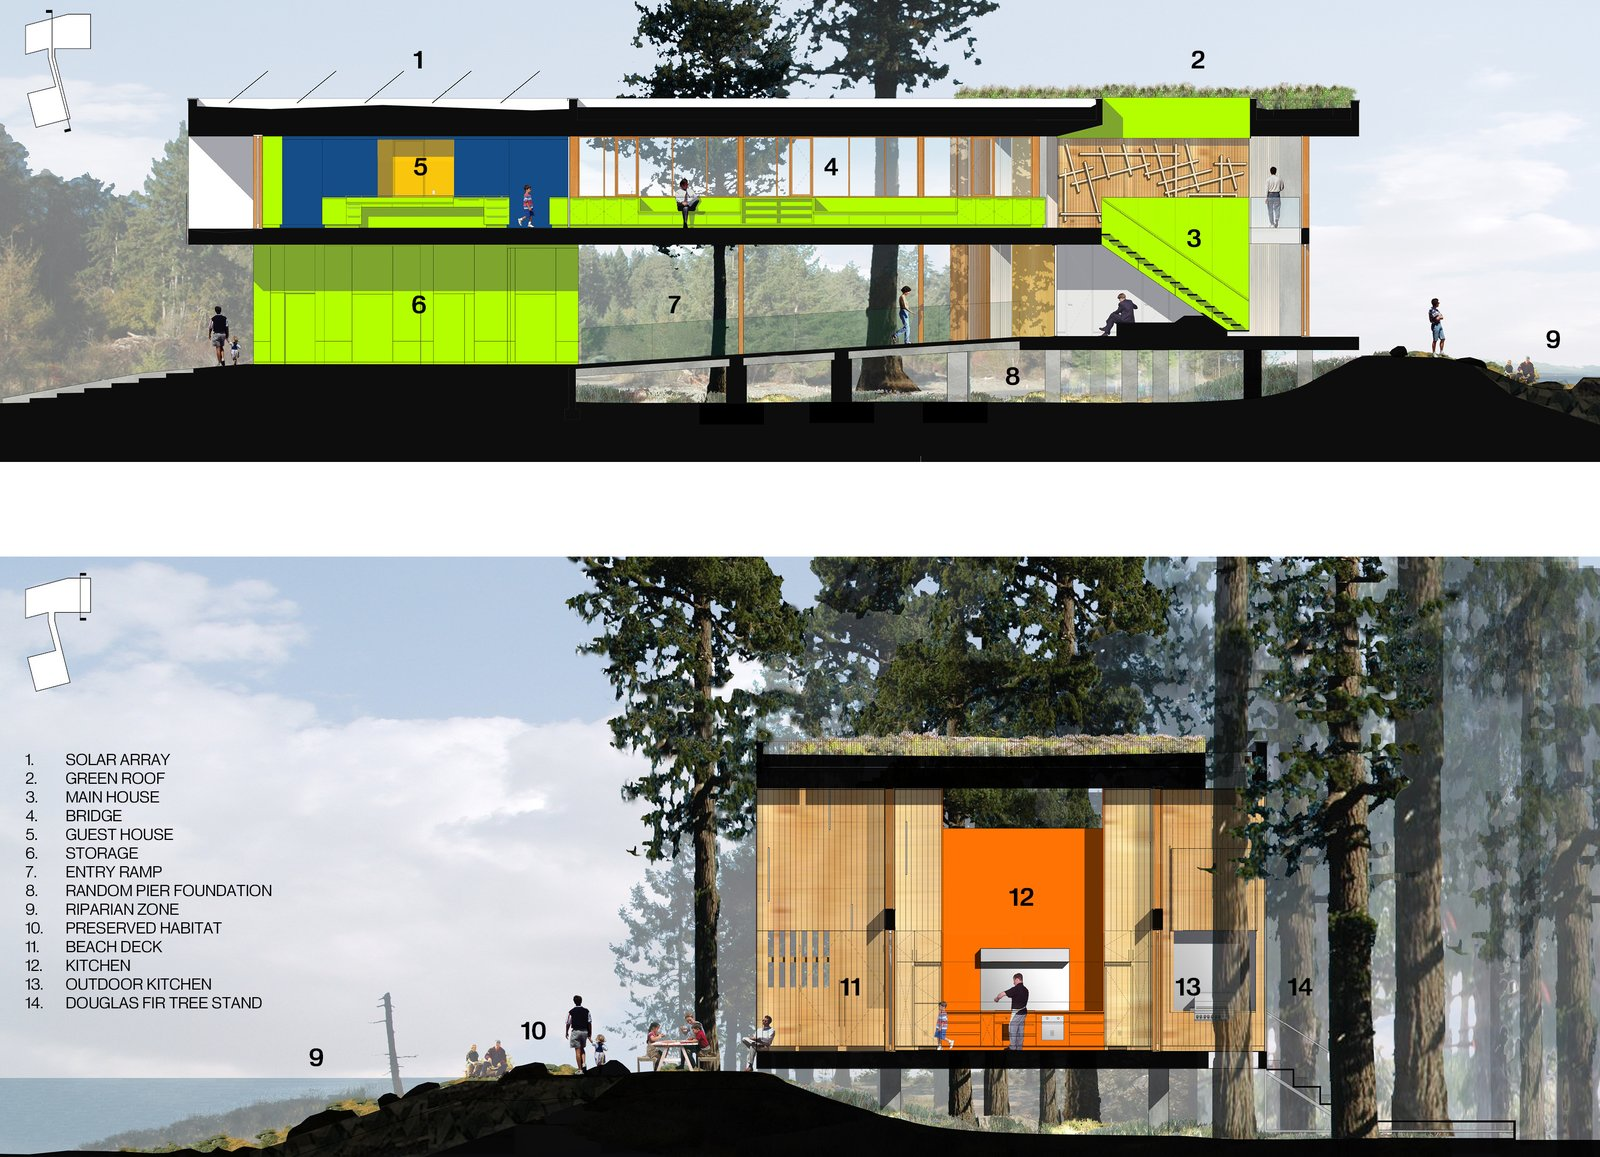 The dwelling acts as two organically interconnected frames, one mineral and one of wood which float above a virtually undisturbed site between one of the world's richest marine tidal ecosystems in the northeast - a wetland preserve to the southwest. The two buildings hover over the site connected by a hald enclosed bridge   #rendering #sections #beachhouse #interstice #intersticearchitects.com #nature   TreeHugger by INTERSTICE Architects